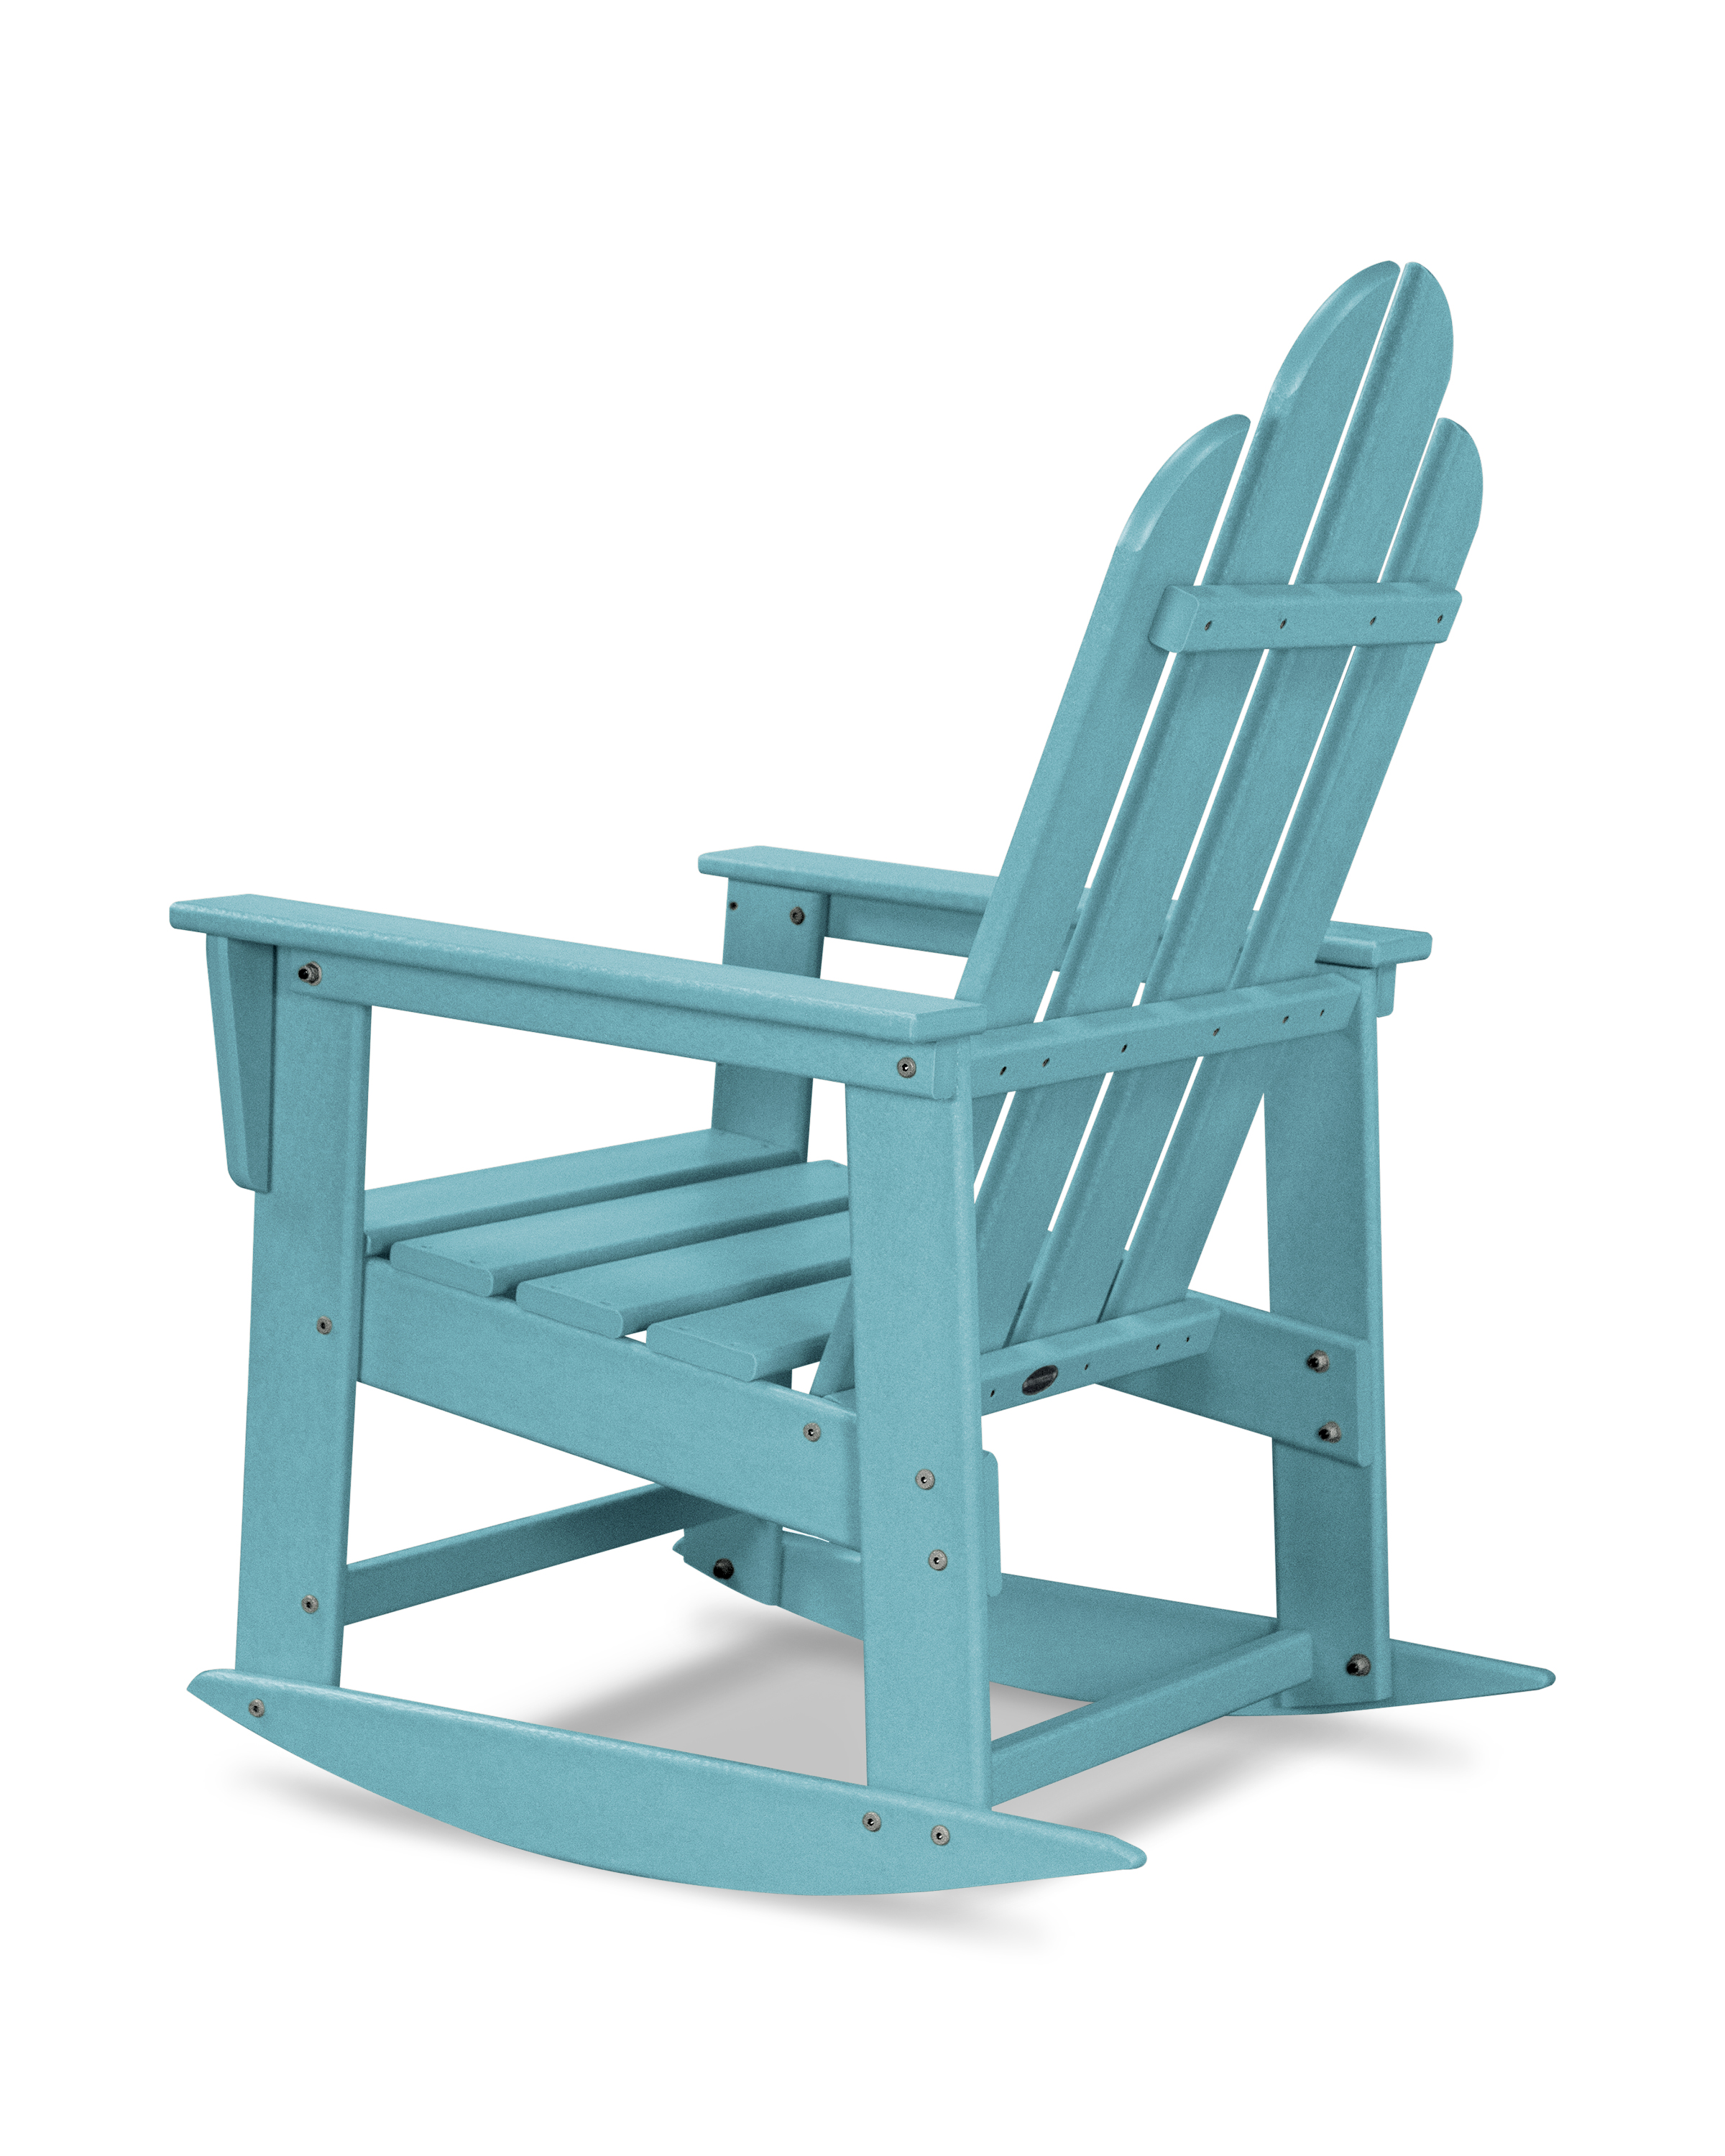 This Cozy Rocker Is The Perfect Place To Sit Back And Dream Of A Summer Day In New England. Polywood Furniture Is Constructed Of Solid Polywood Lumber That